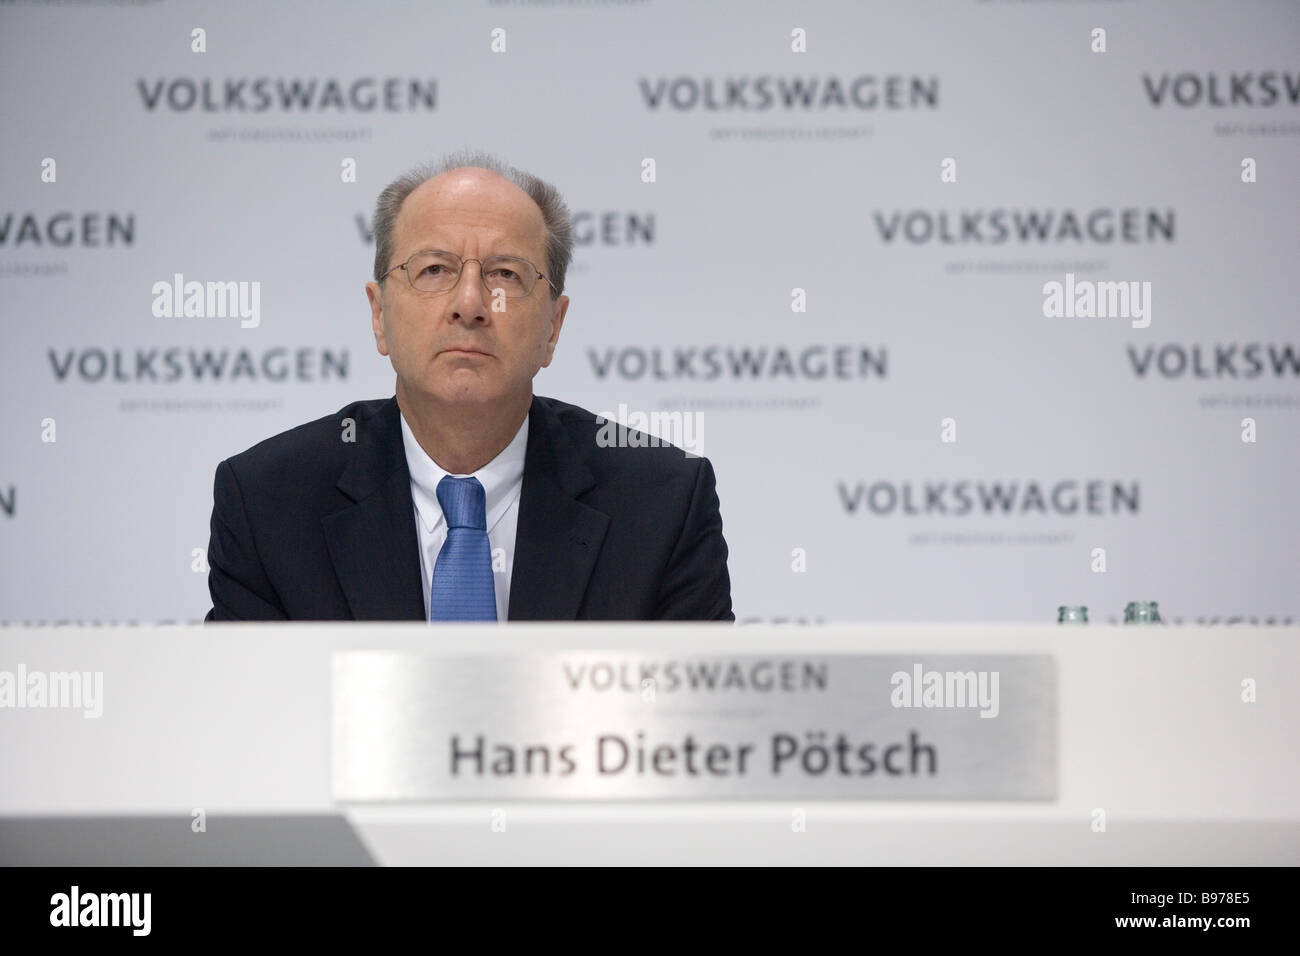 Hans Dieter Poetsch member of the board of the Volkswagen AG during annual press conference 2009 - Stock Image